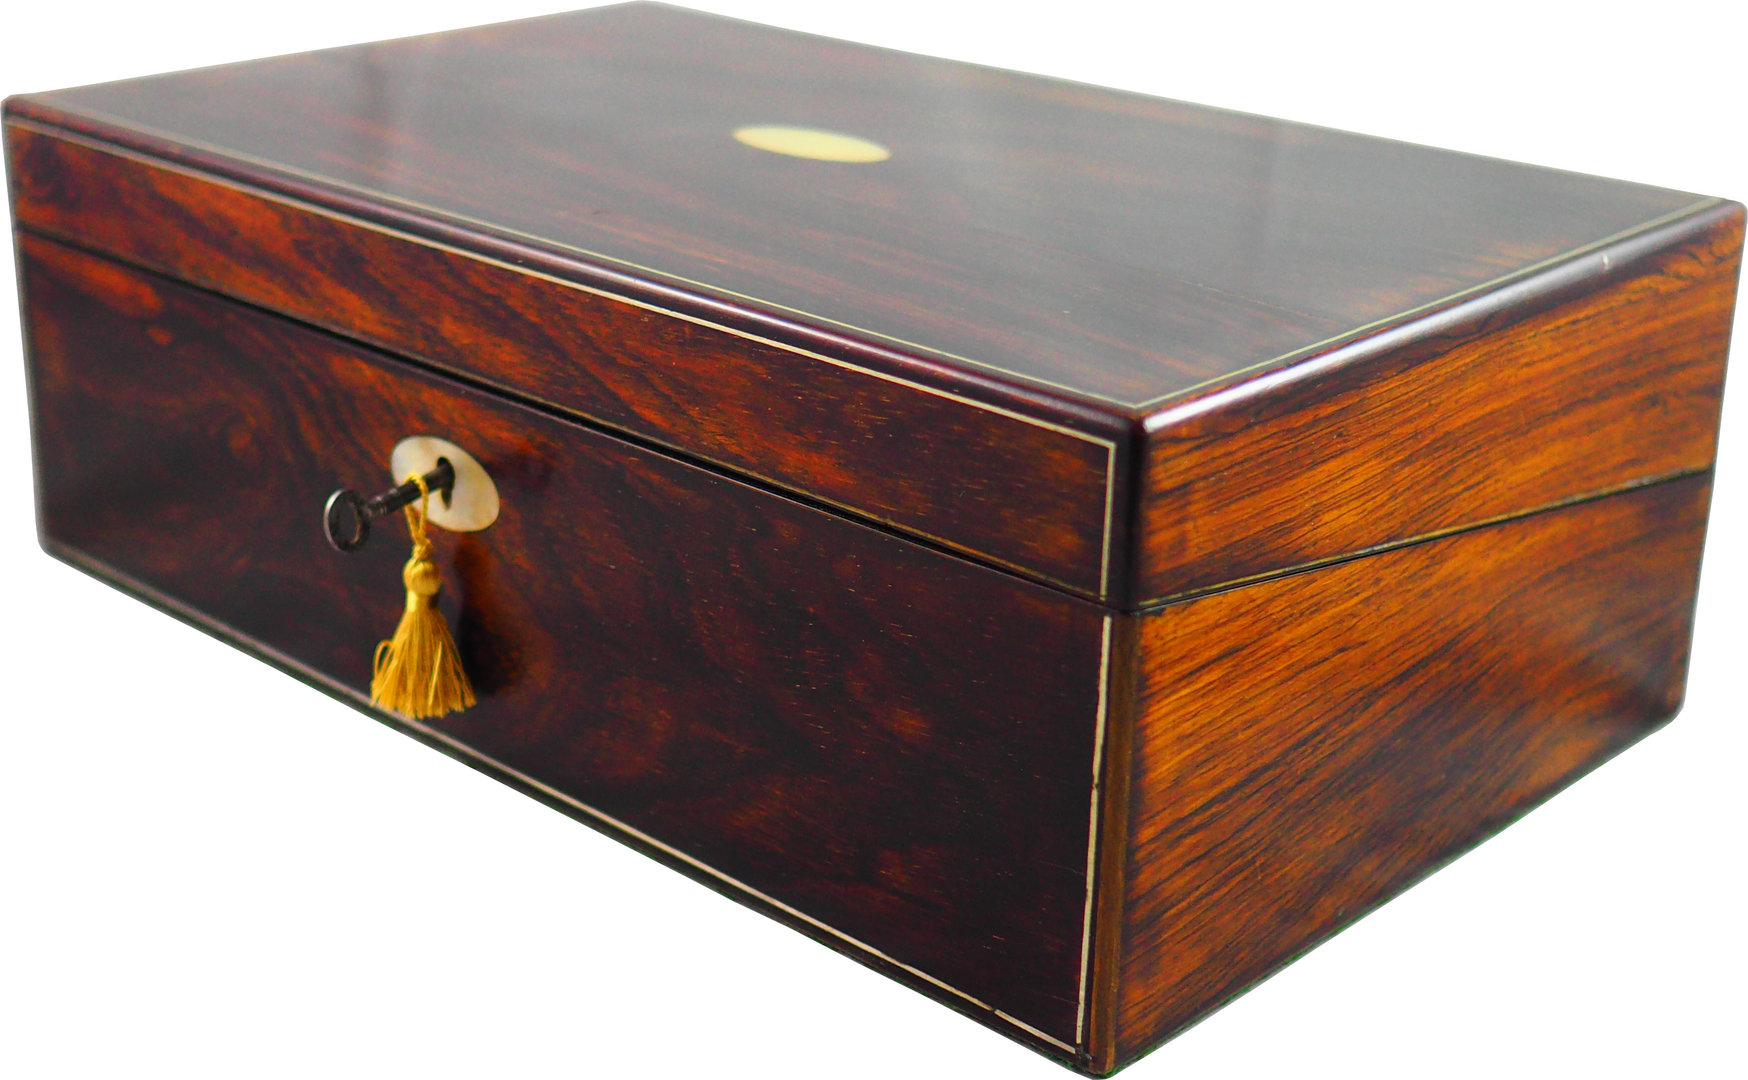 Rosewood writing slope box